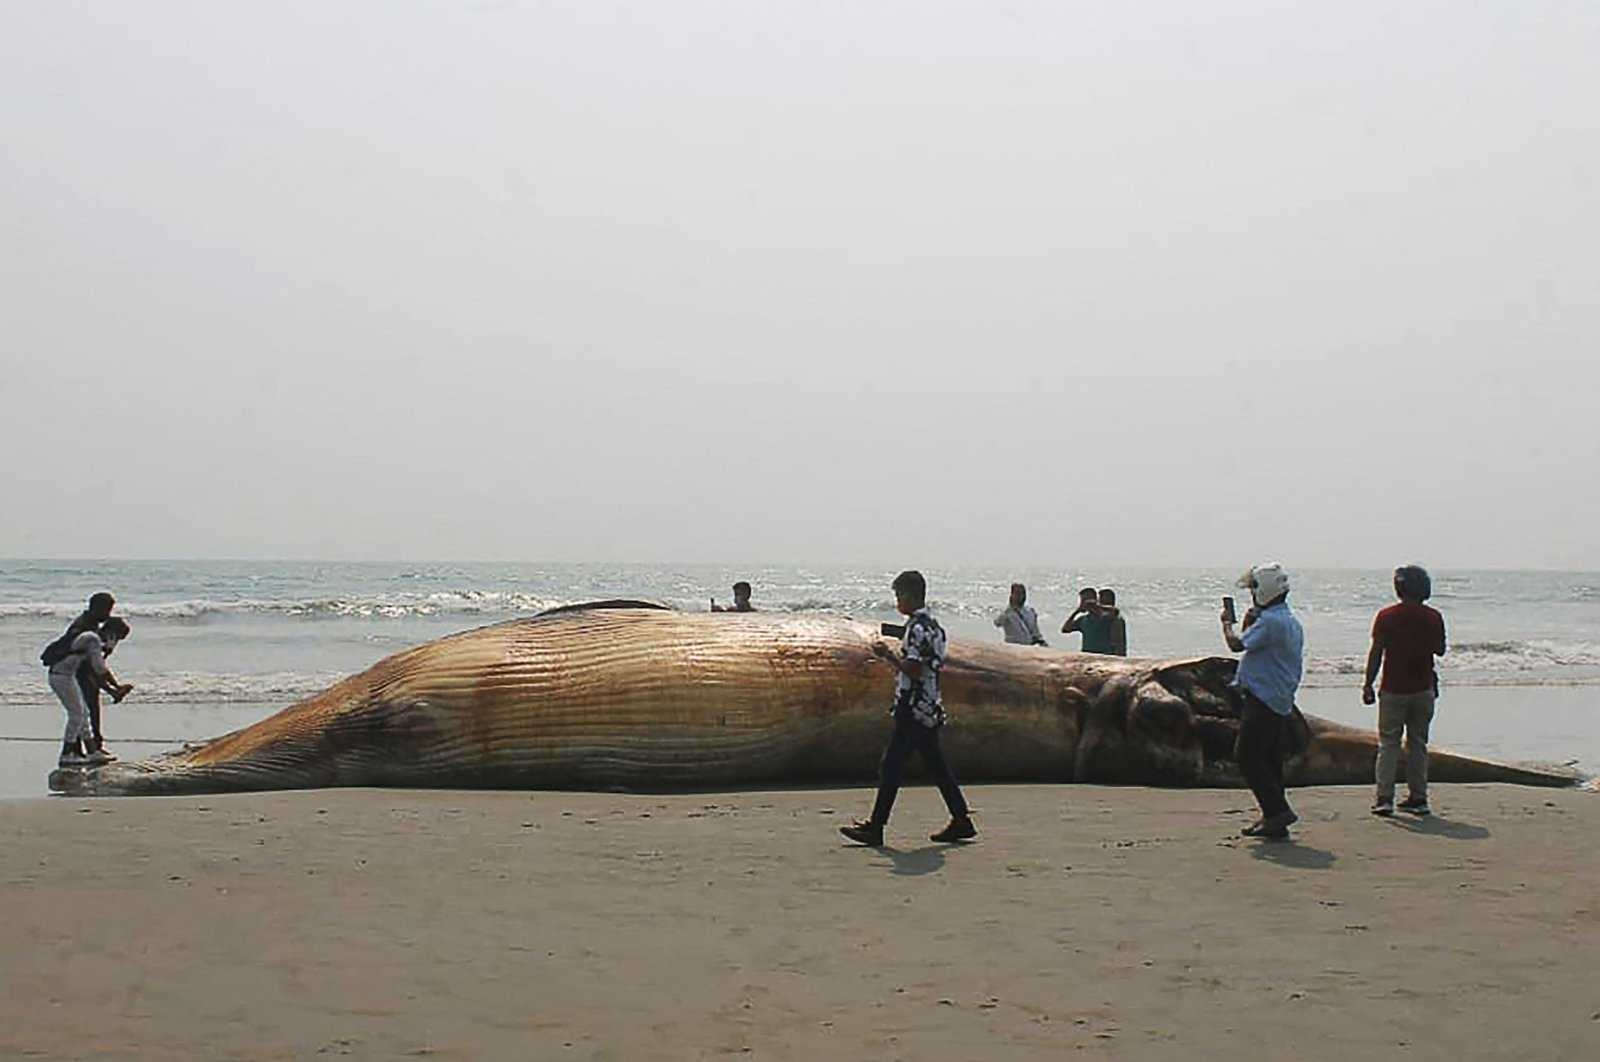 Onlookers stand around a dead whale washed away at a beach in Cox's Bazar, Bangladesh, April 9, 2021. (AFP Photo)